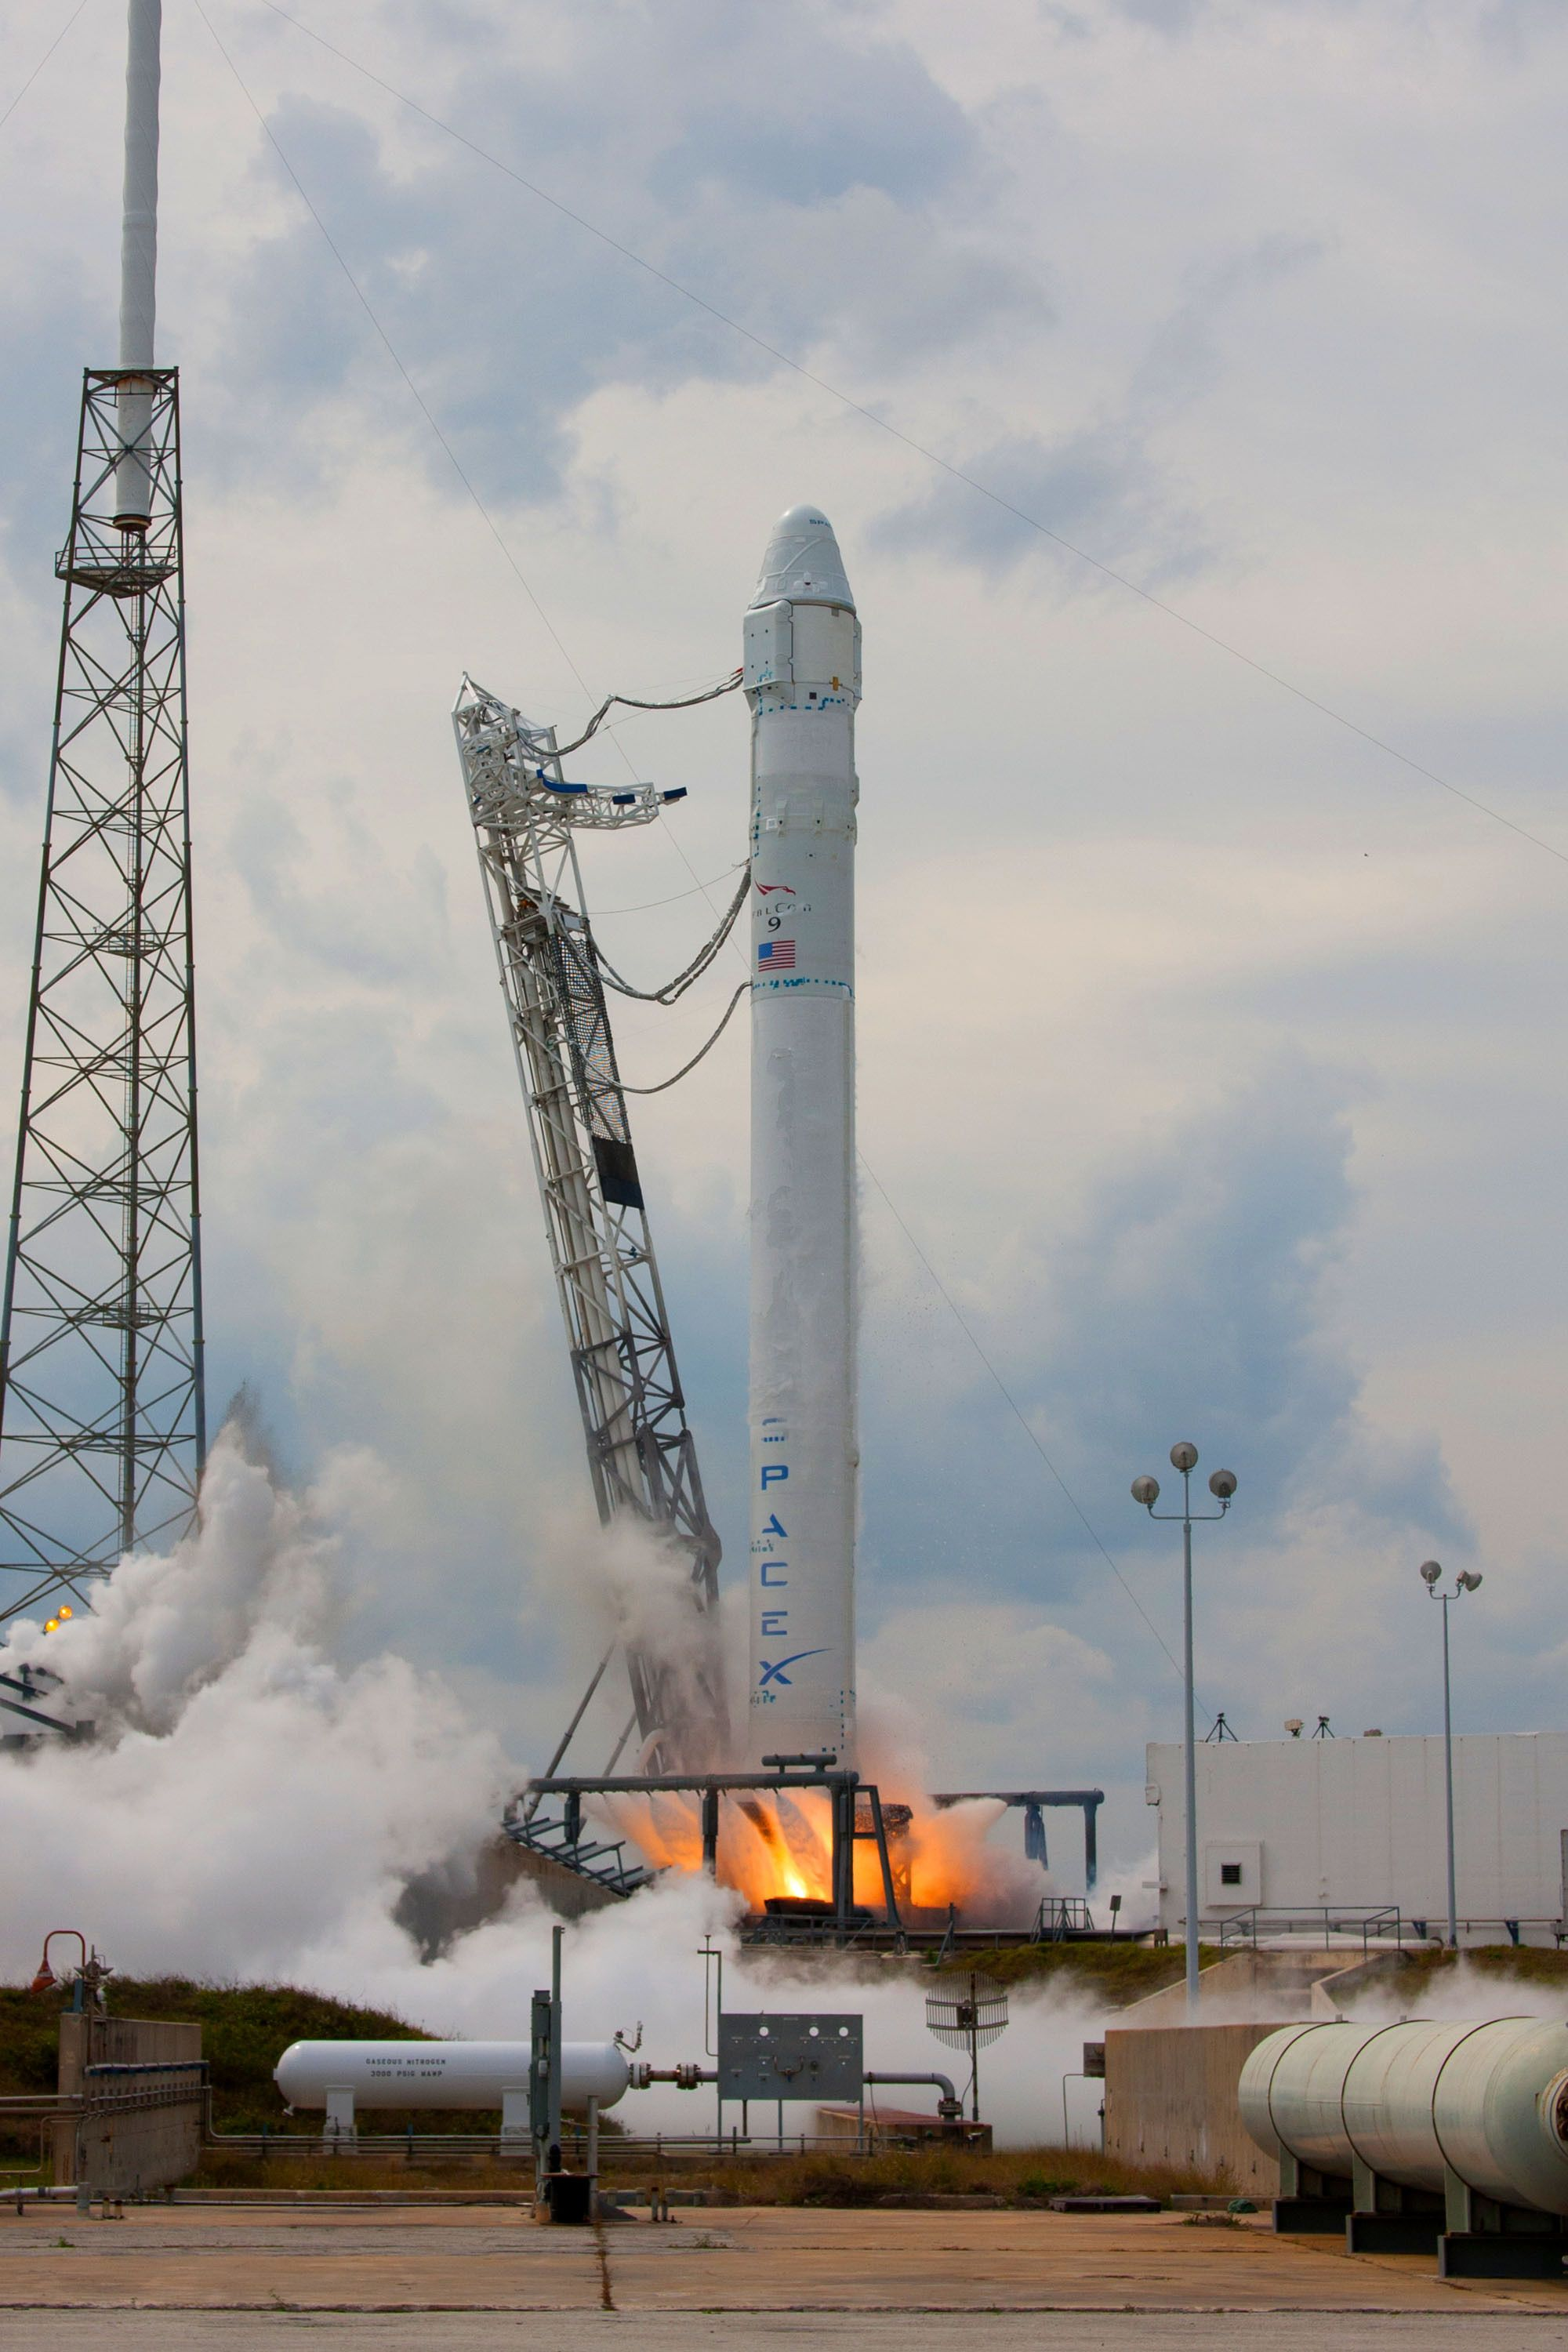 spacex dragon launch today at 9 30 am et watch the 2nd supply trip